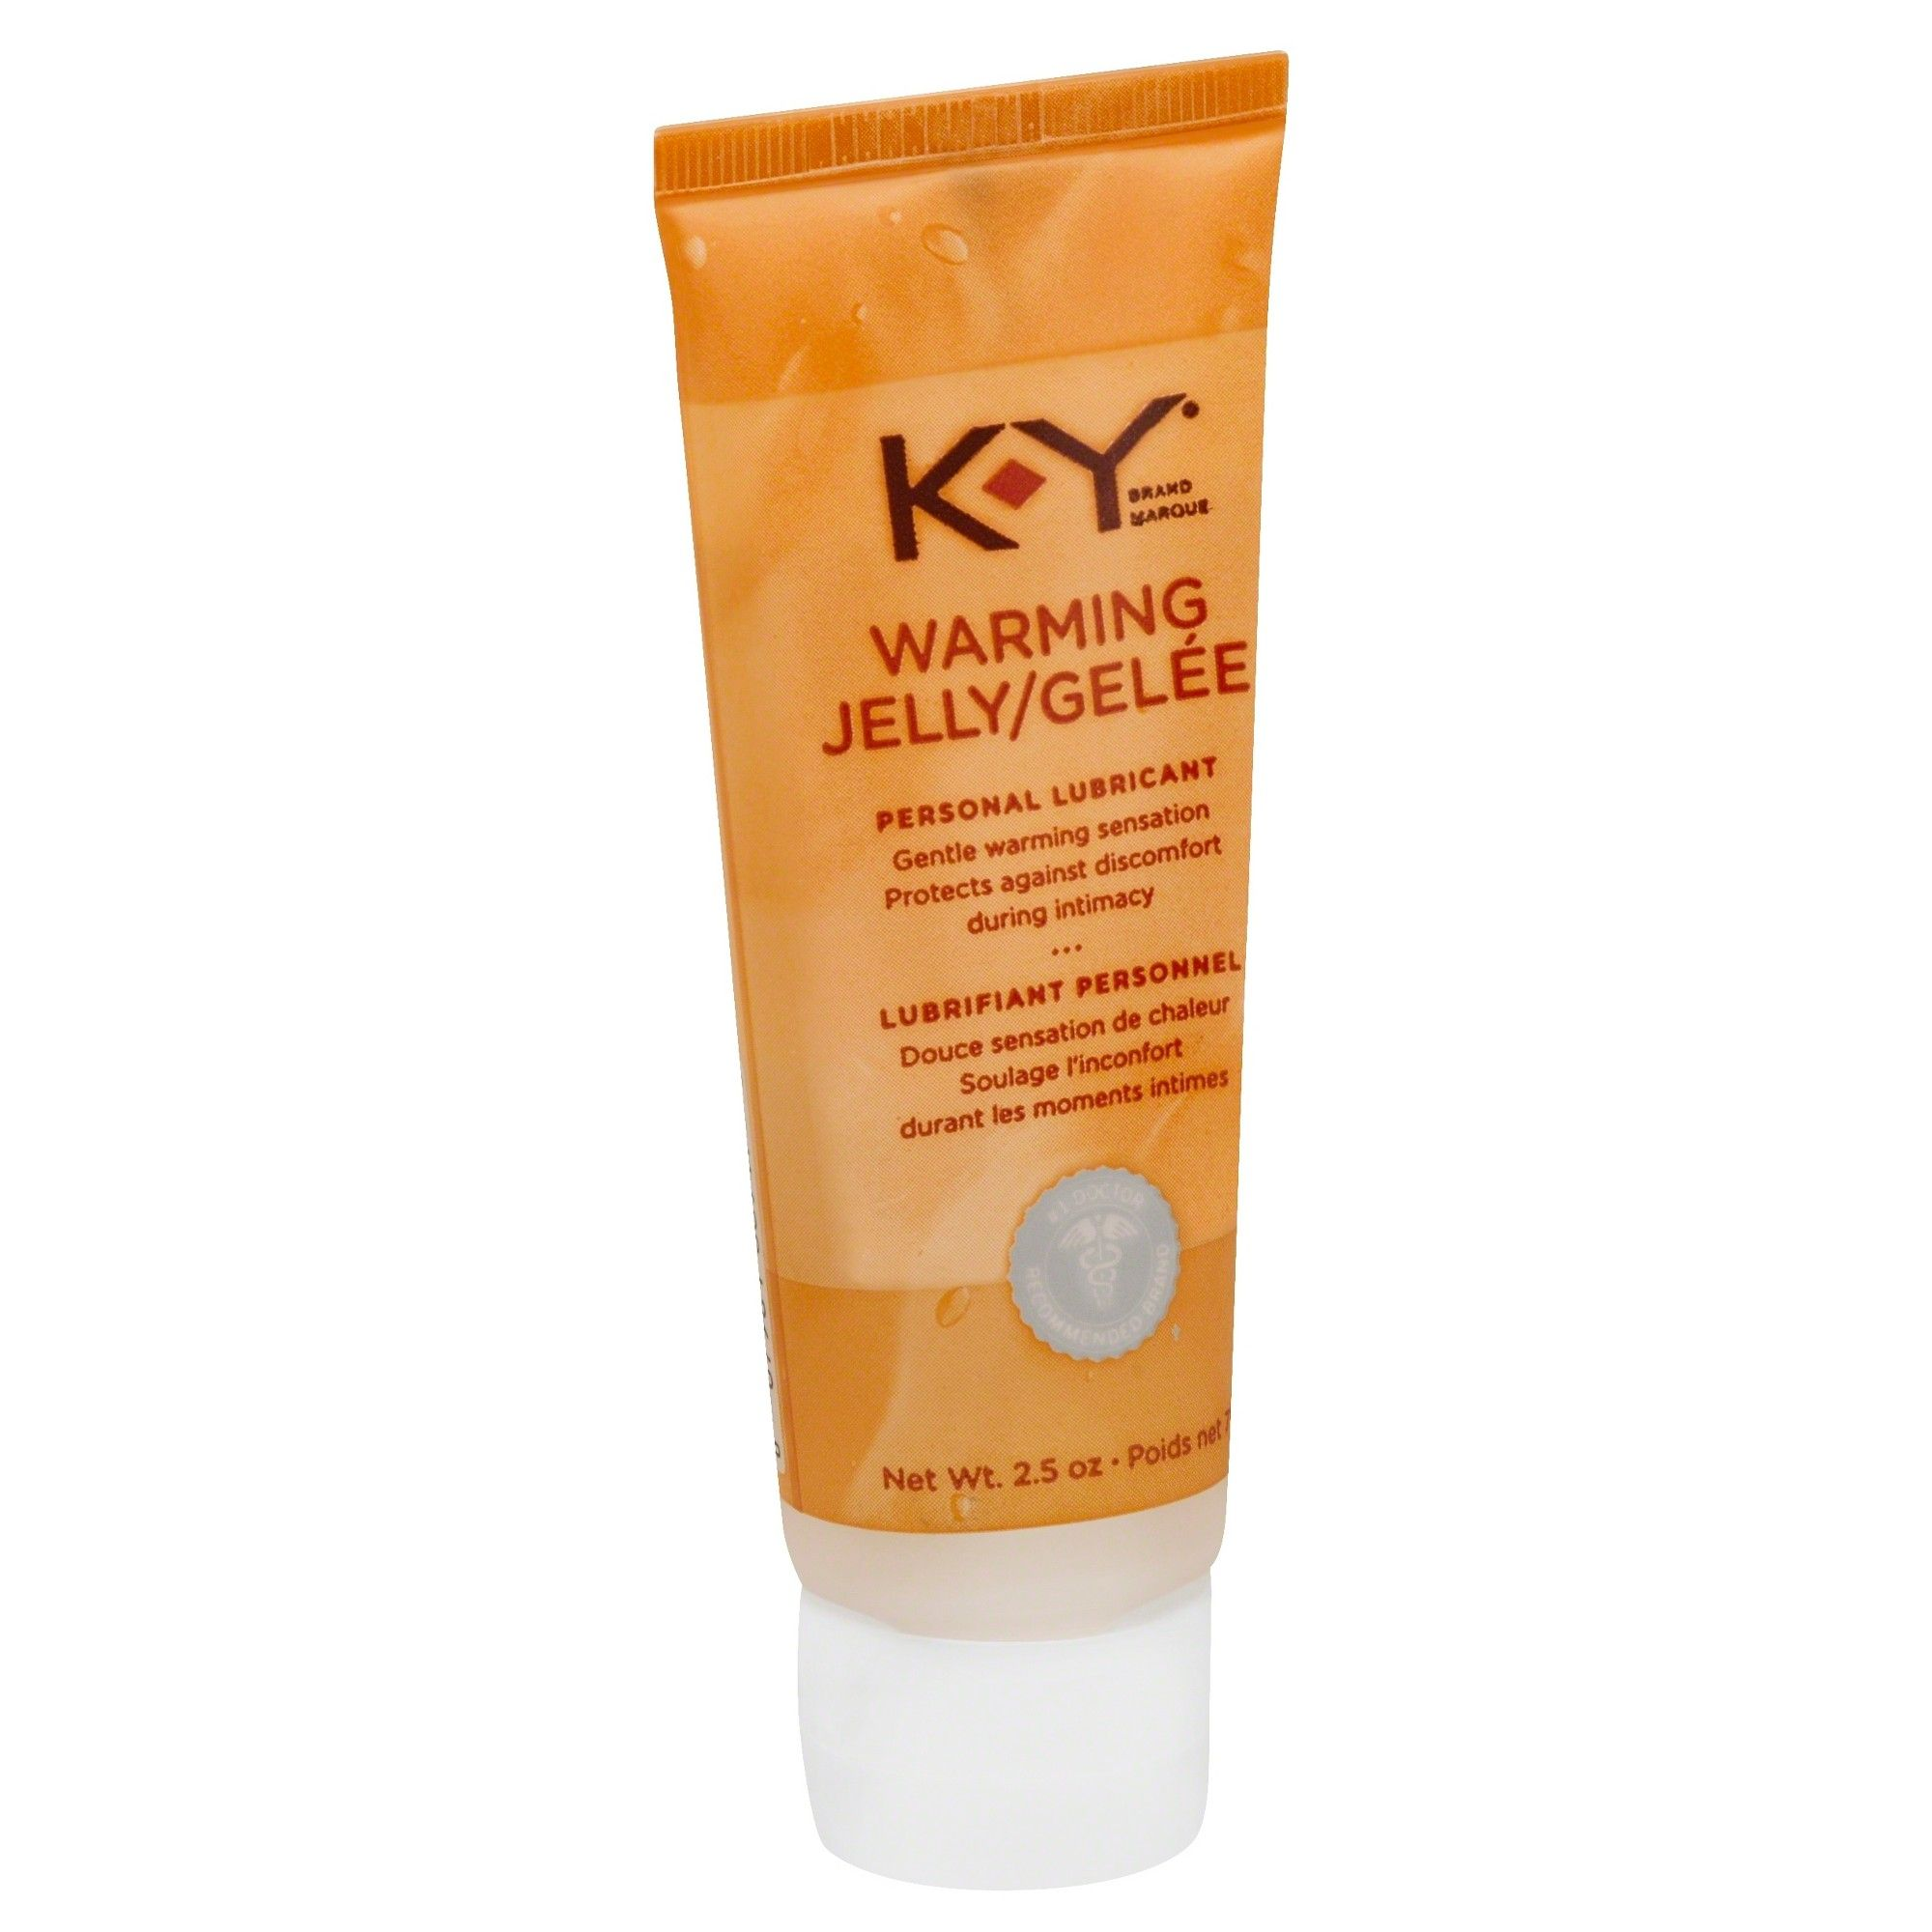 KY Warming Jelly Personal Lubricant 2.5 oz Jelly